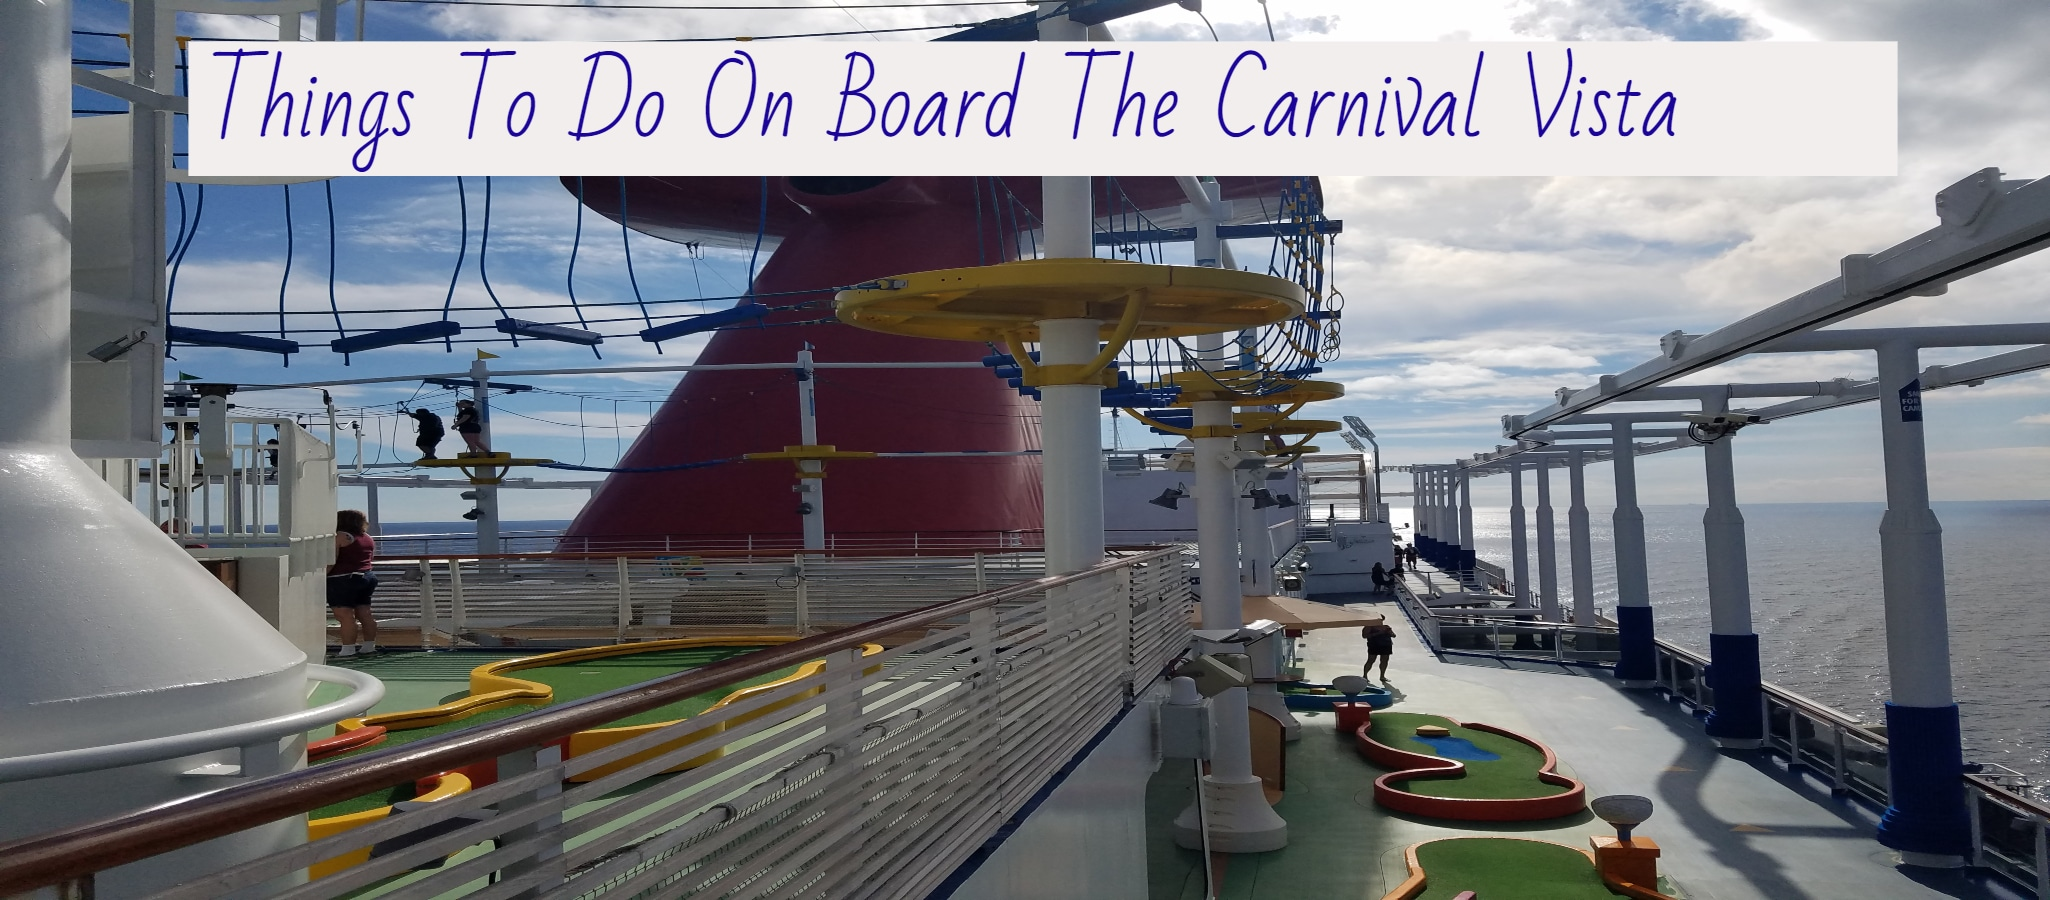 Things to Do on the Carnival Vista